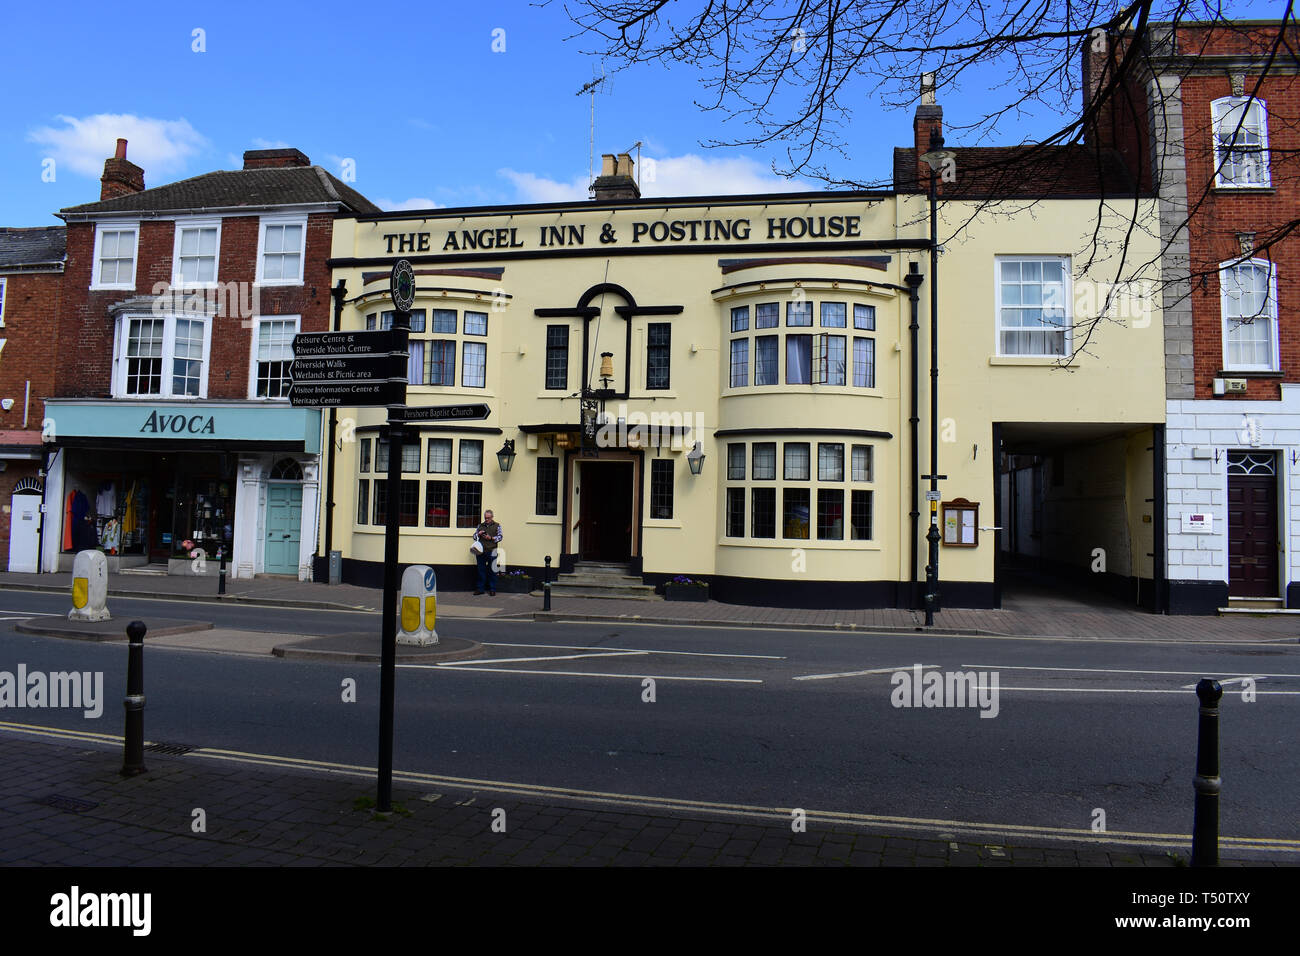 The Angel Inn & Posting House is an old coaching inn,dating back to Tudor times.Once also a posting house for distributing mail after arrival by coach - Stock Image